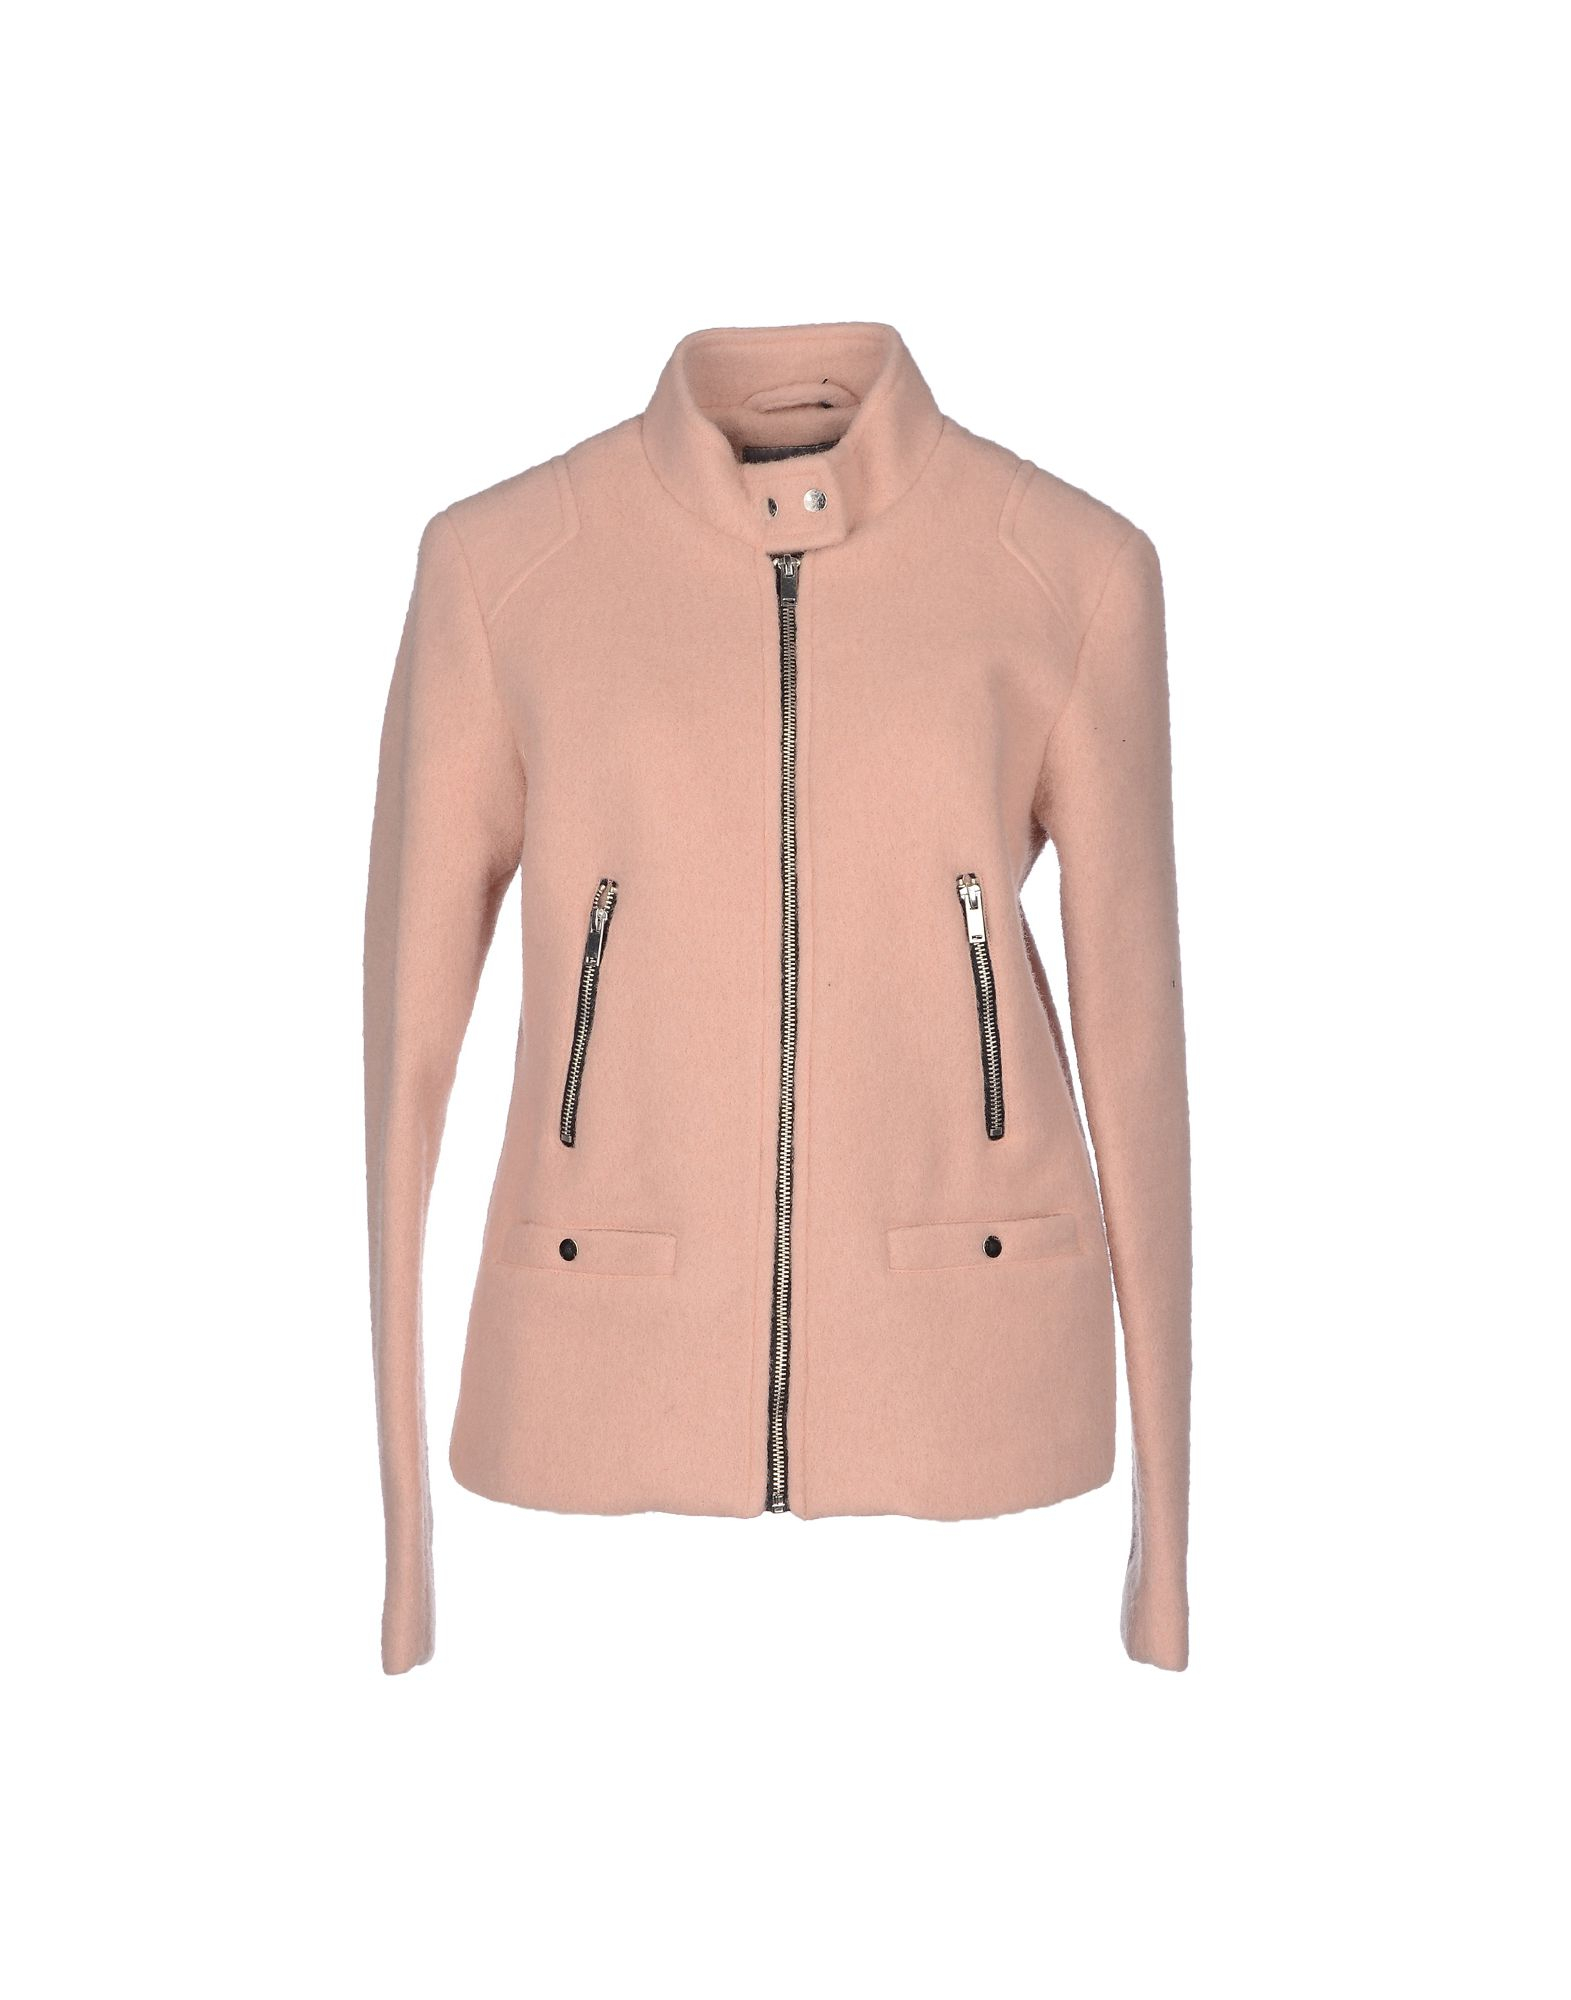 Salmon Pink Jacket | Outdoor Jacket